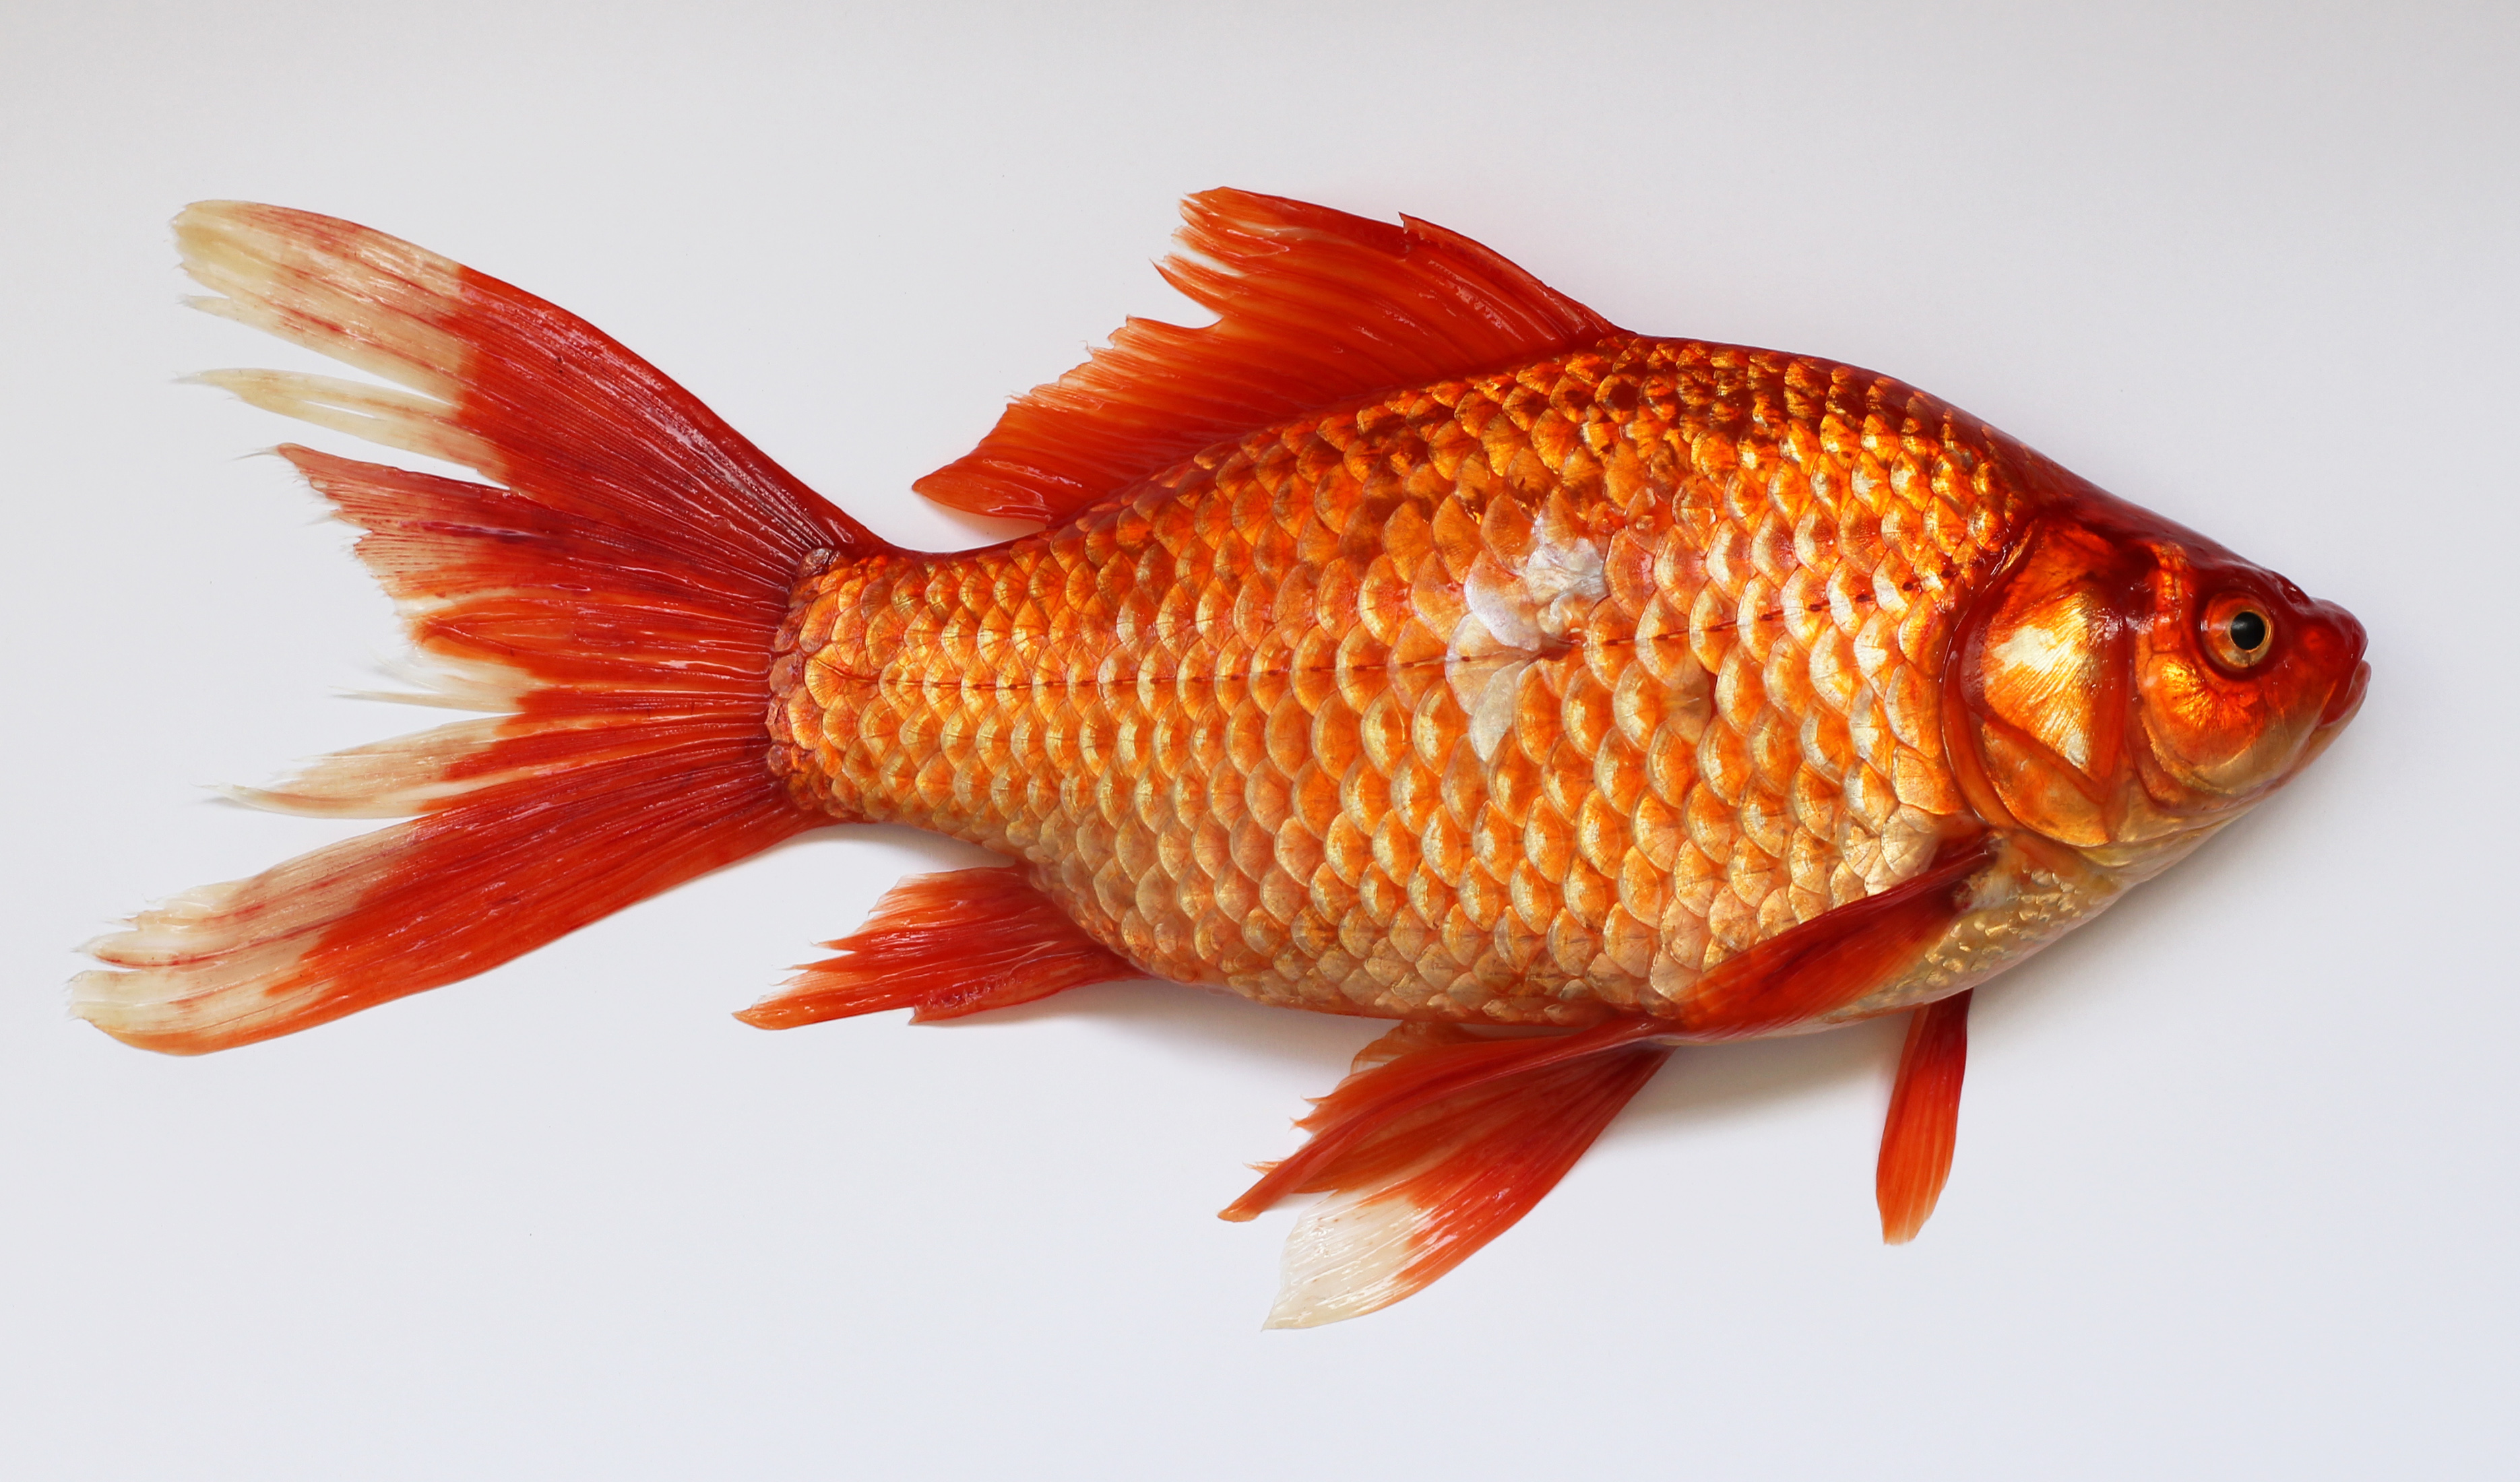 File:Carassius wild golden fish 2013 G1.jpg - Wikimedia Commons